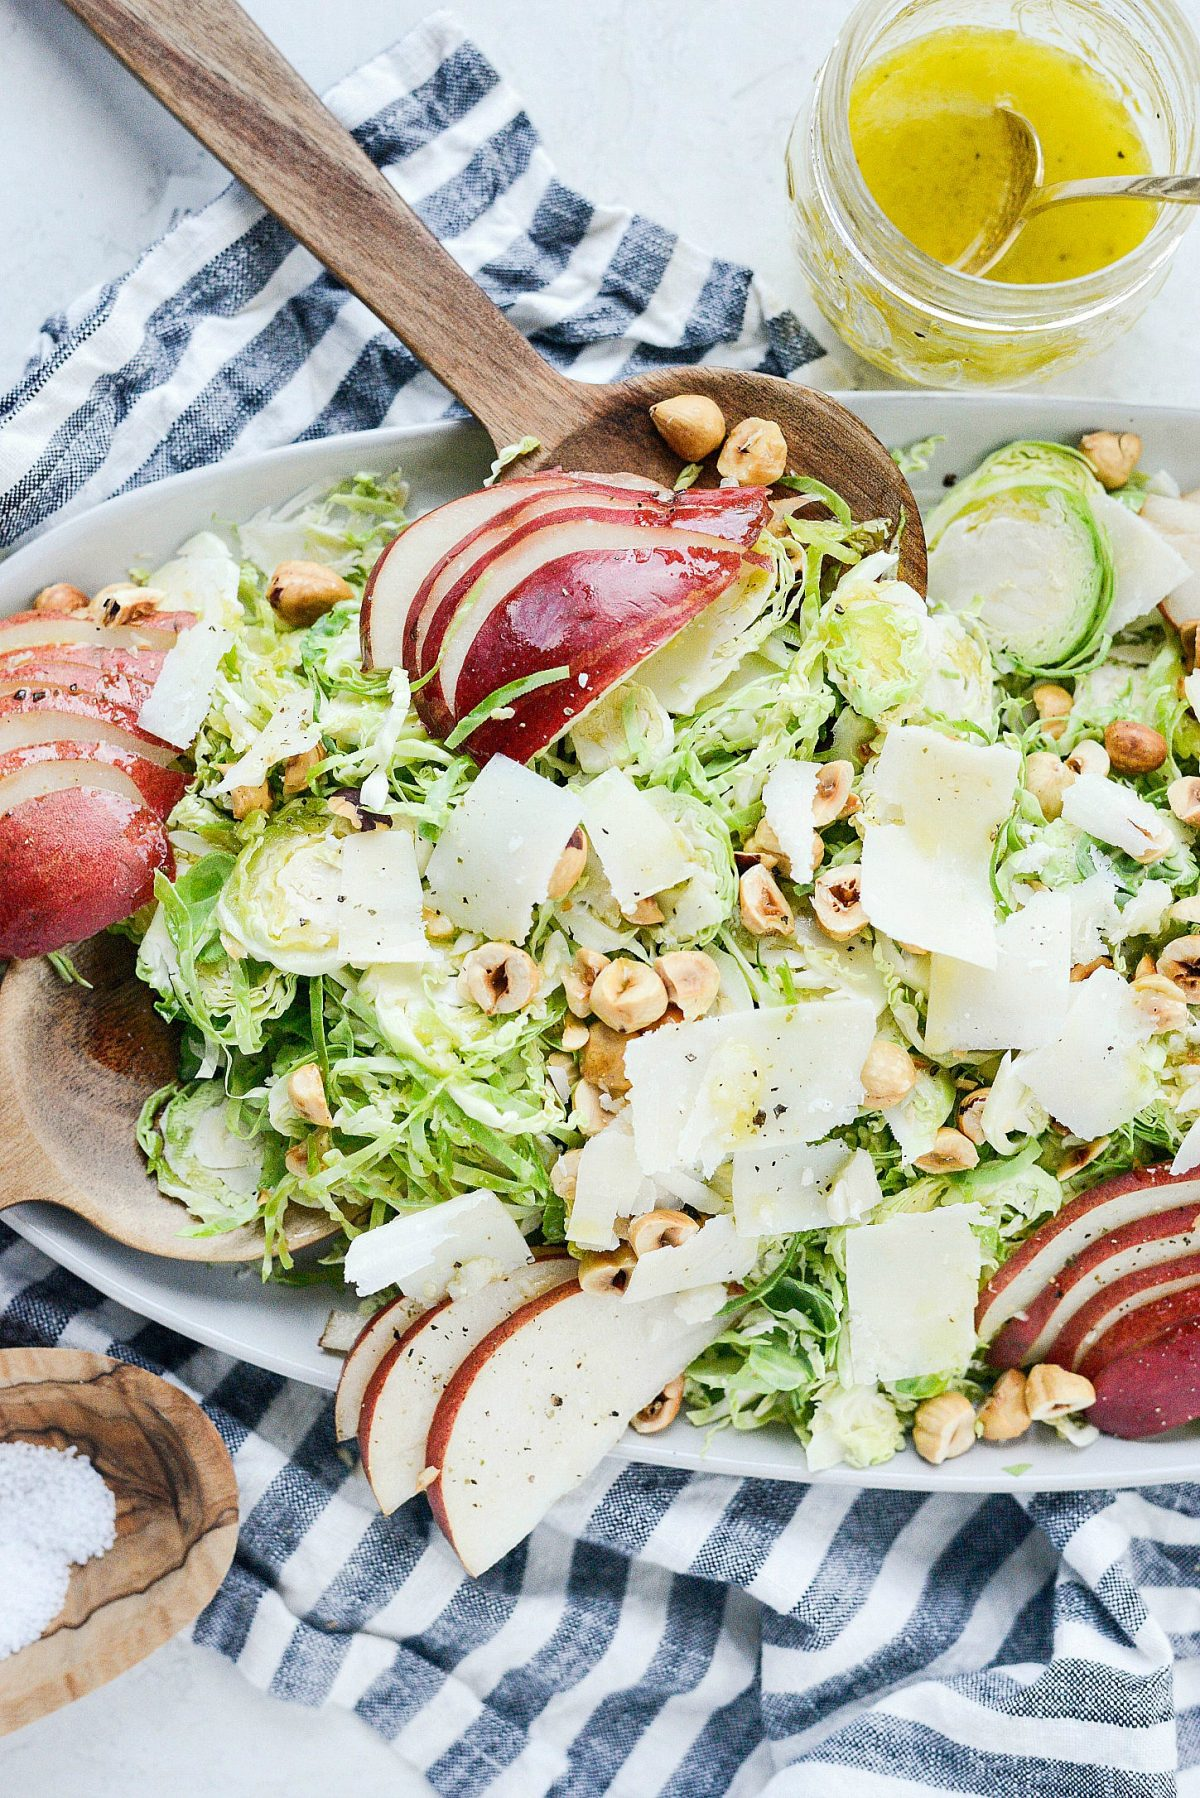 Shaved-Brussels-Sprout-Salad-with-Pear-Parmesan-and-Hazelnuts-l-SimplyScratch.com-19